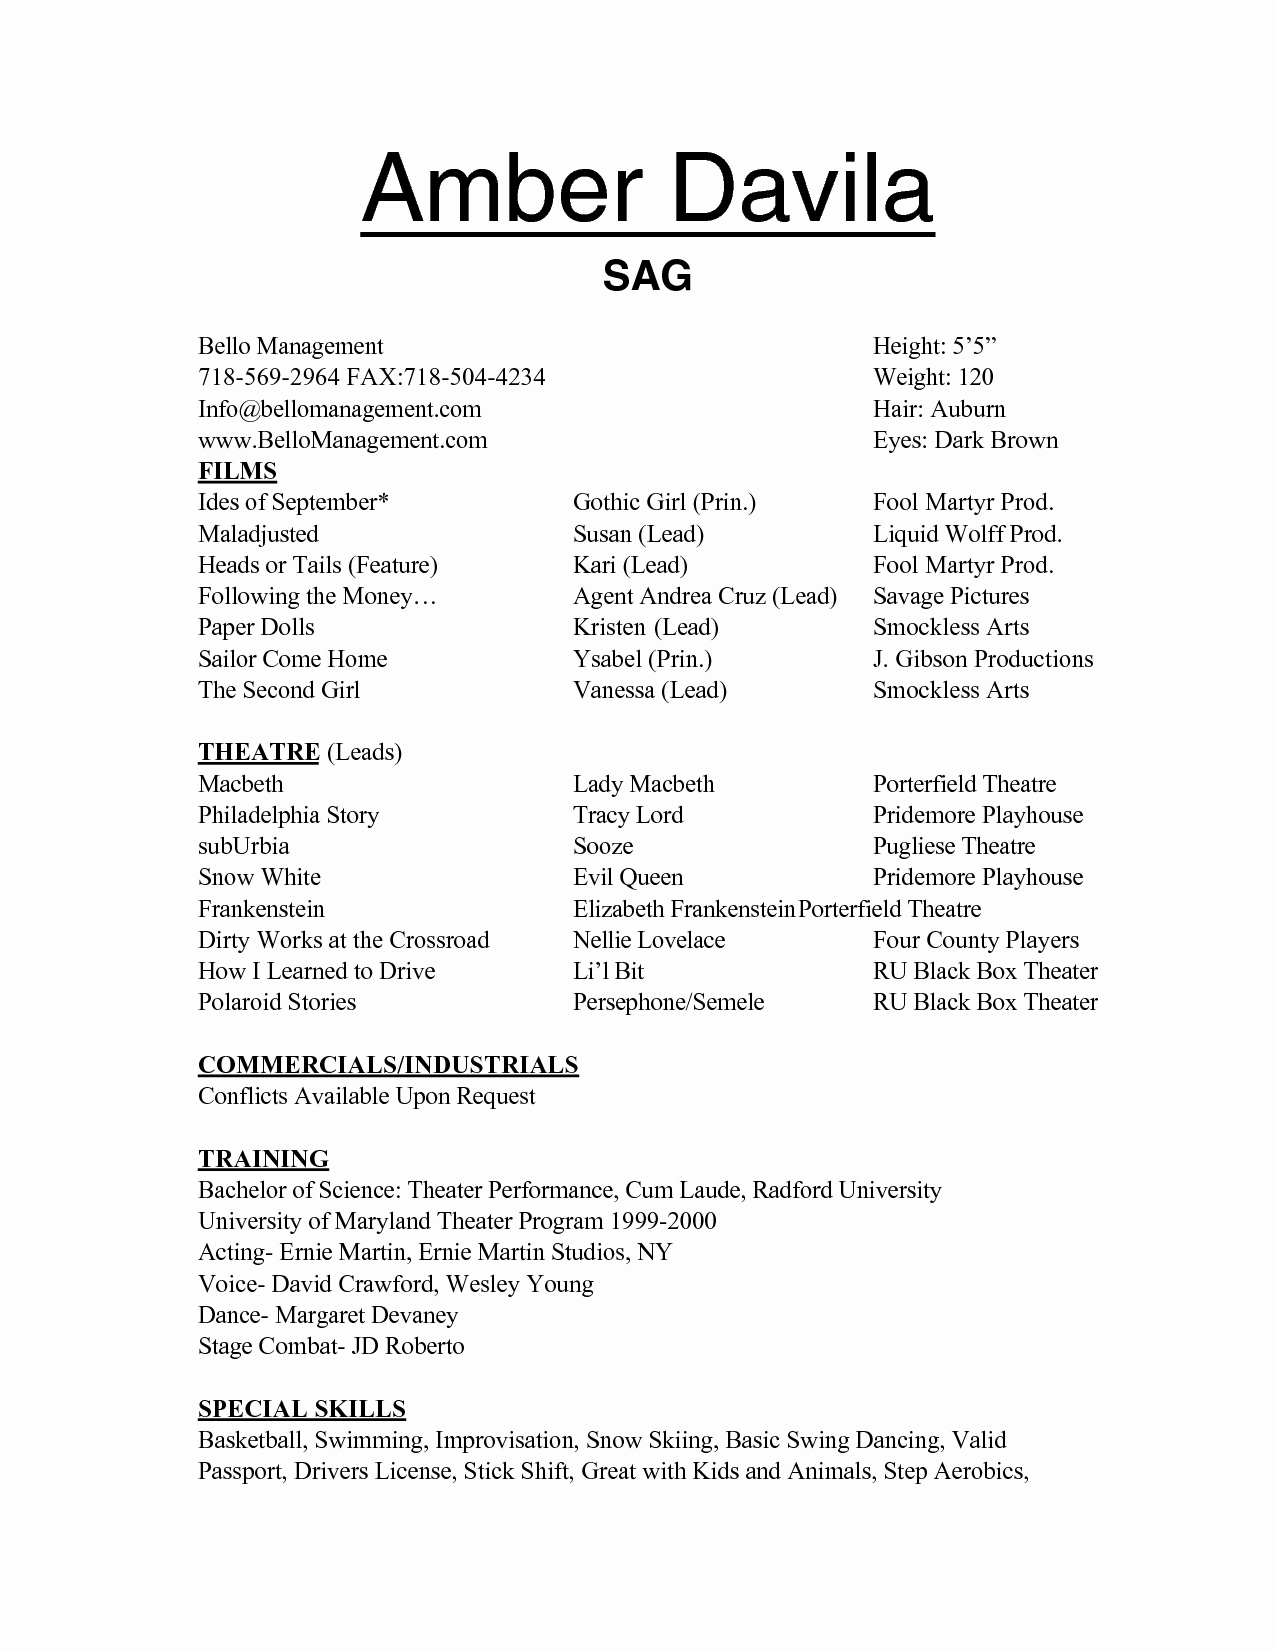 Free Acting Resume Template Beautiful Free Acting Resume Templates Samplebusinessresume